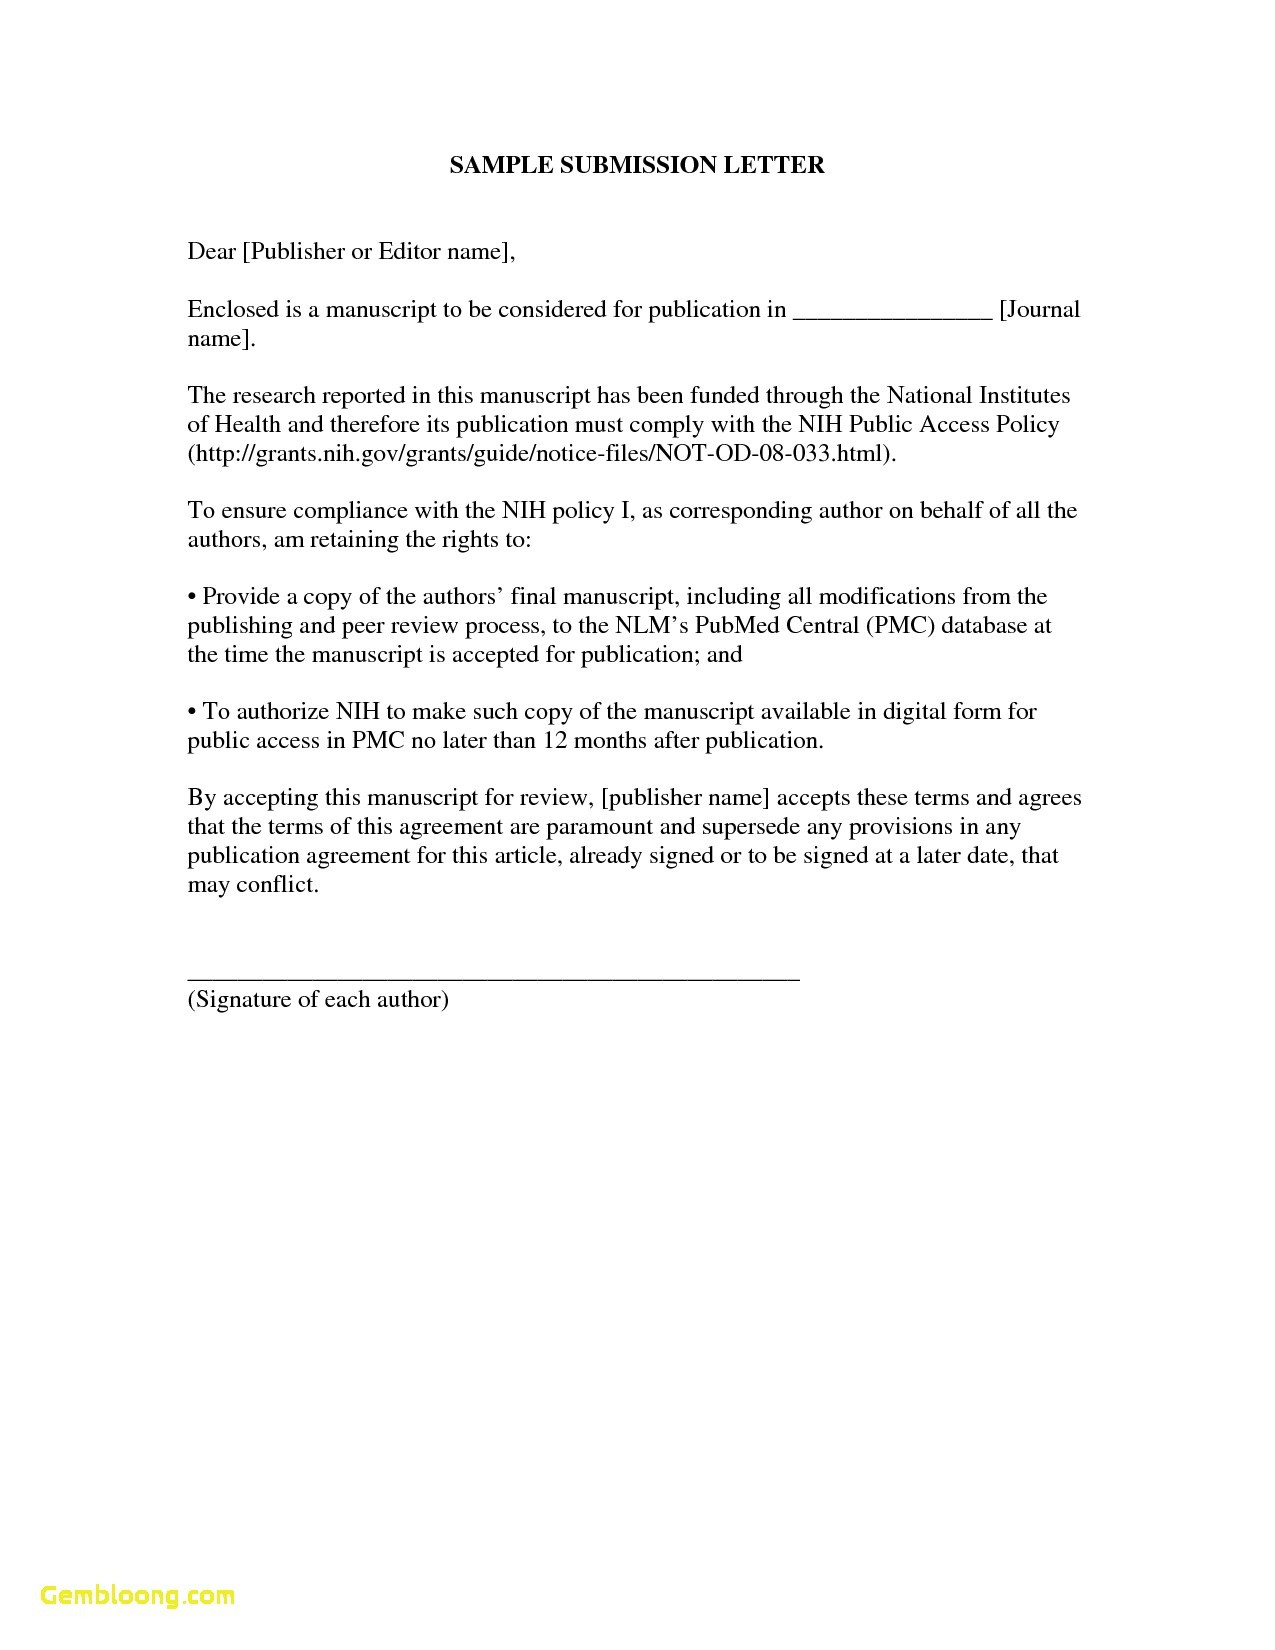 Pre Written Cover Letter Template - Covering Letter format for Document Submission